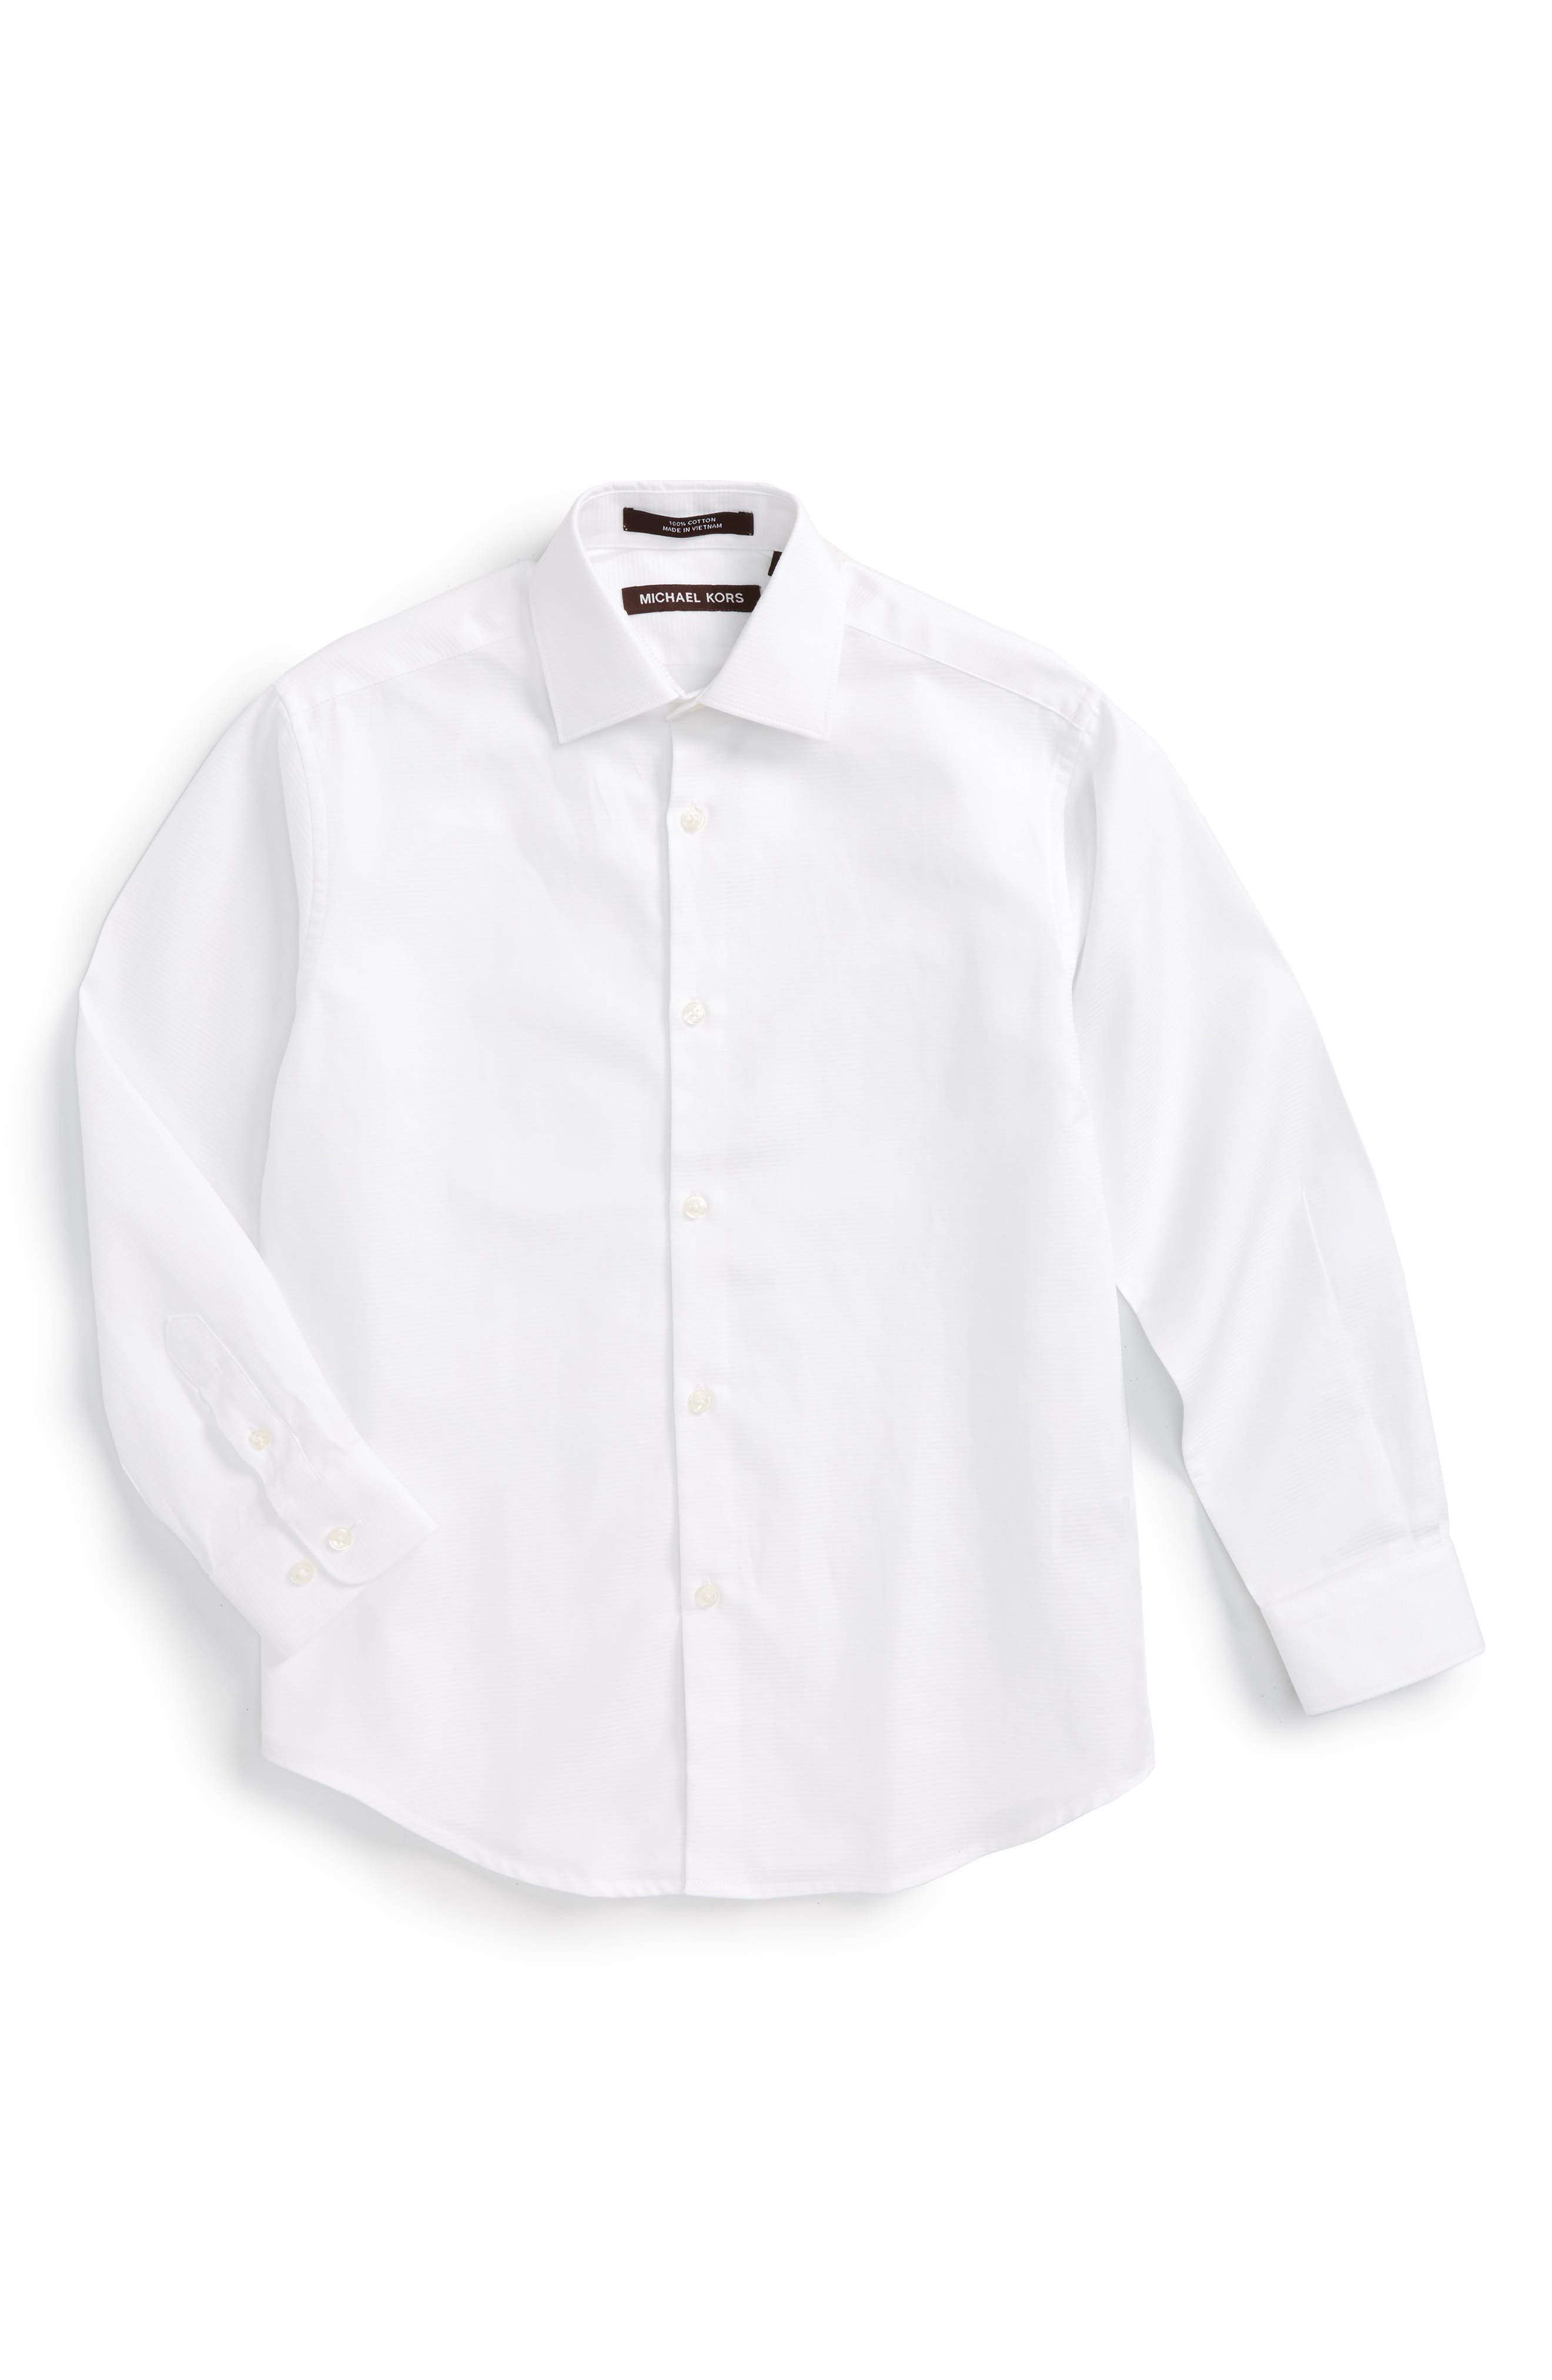 Solid Dress Shirt,                             Main thumbnail 1, color,                             WHITE